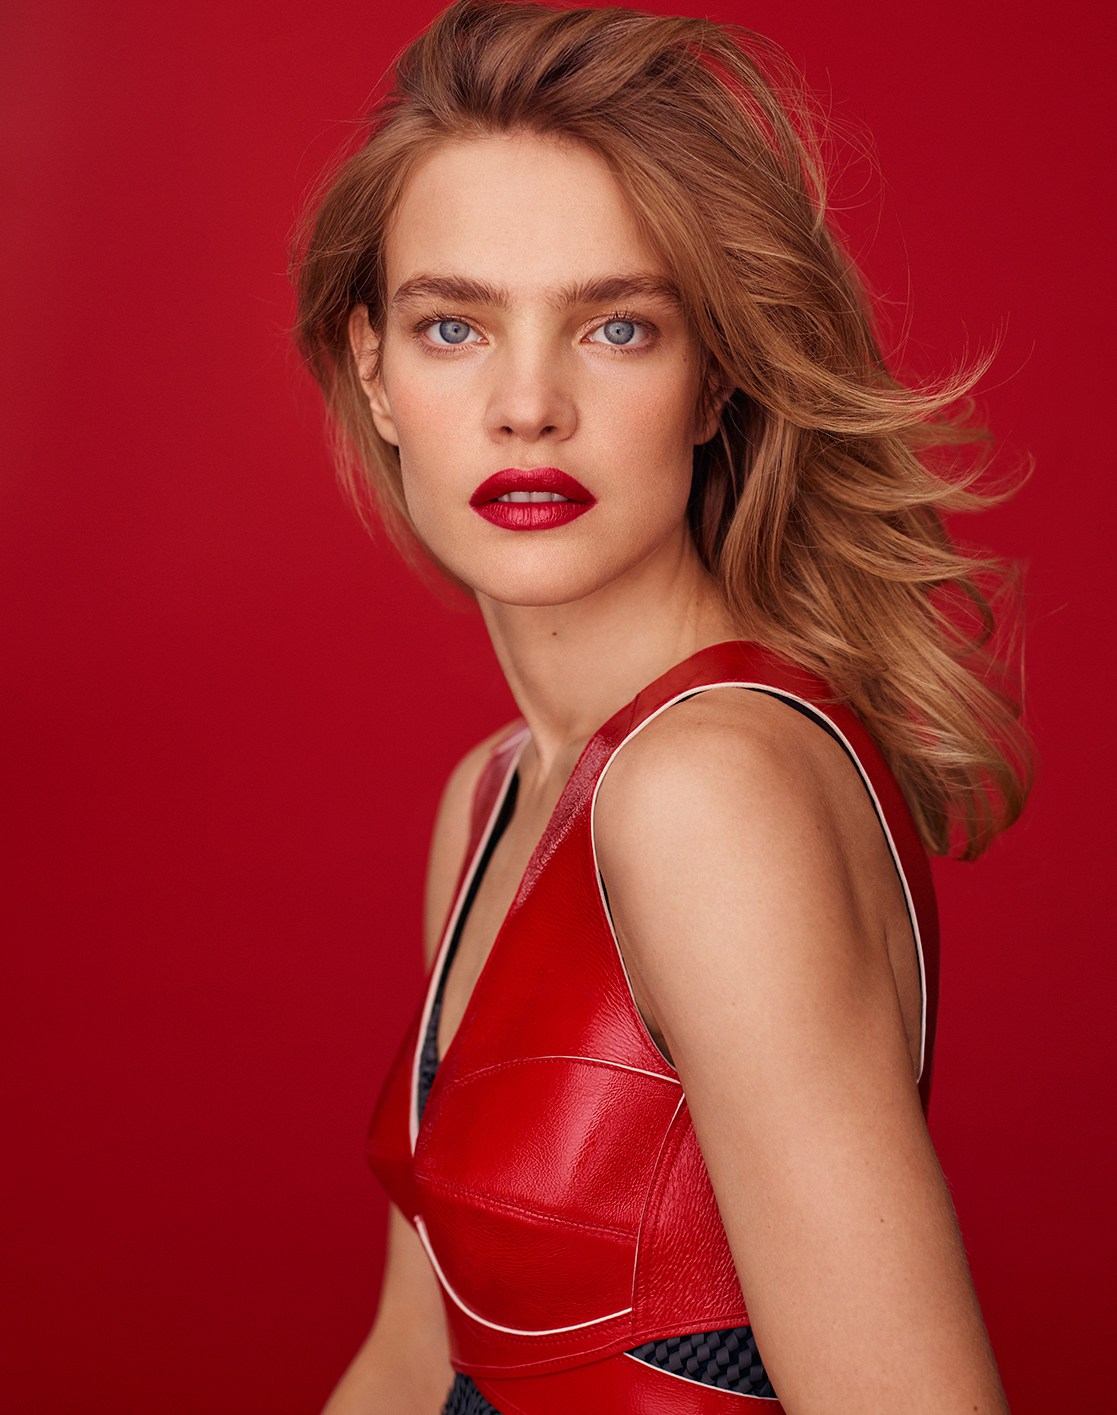 NATALIA VODIANOVA: THE PRINCESS AND THE PHILANTHROPY